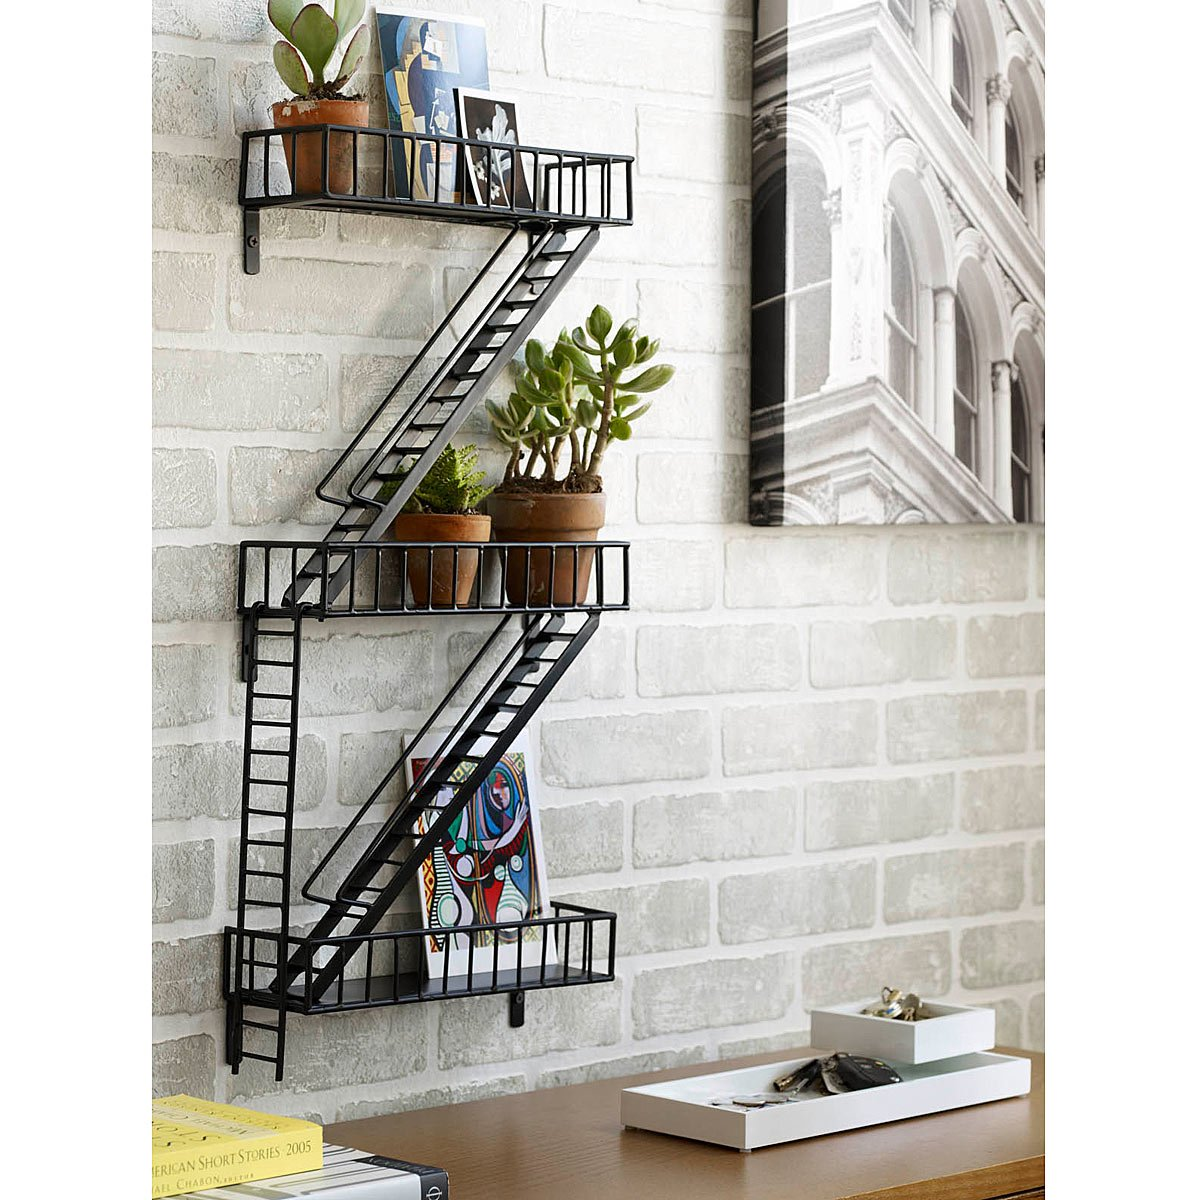 fire escape shelf - Home Decor Accents